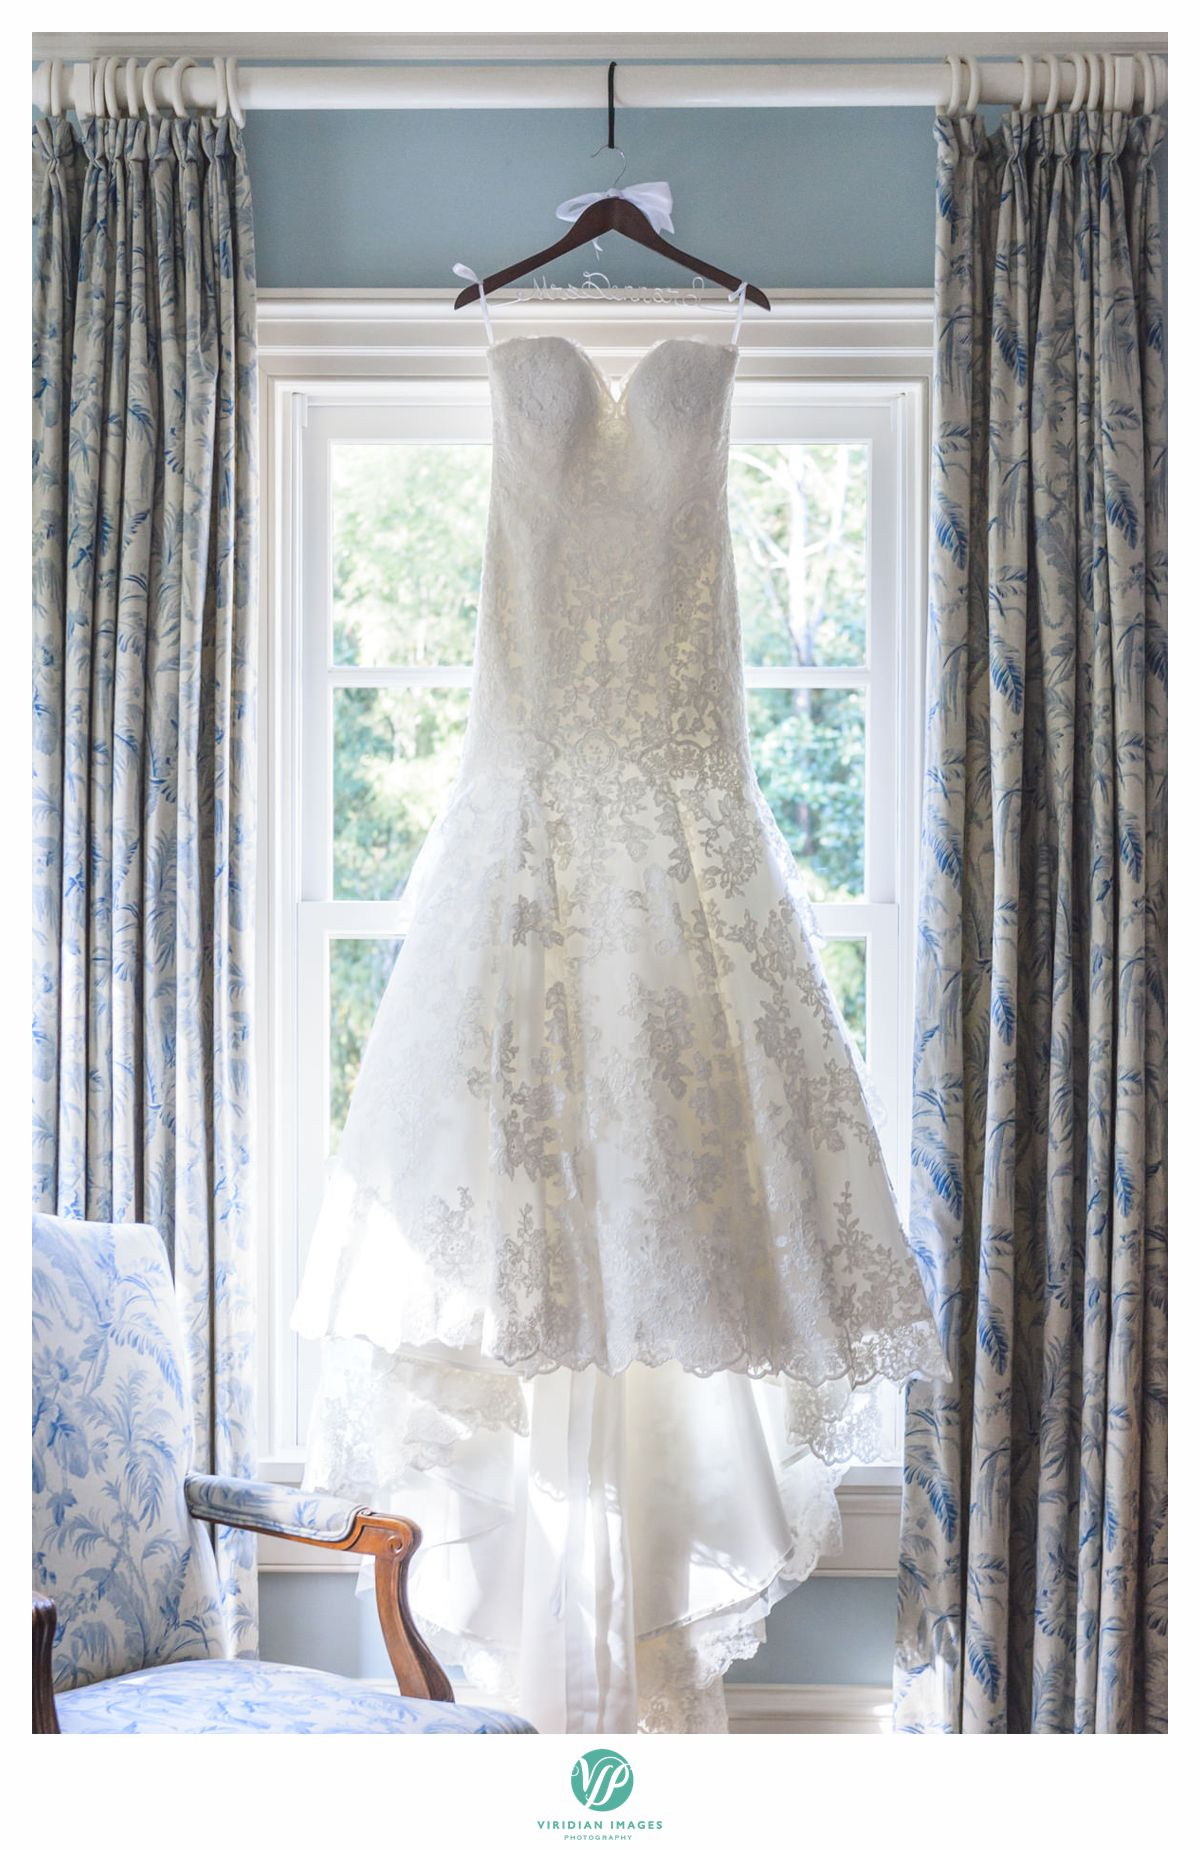 wedding dress in bridal room